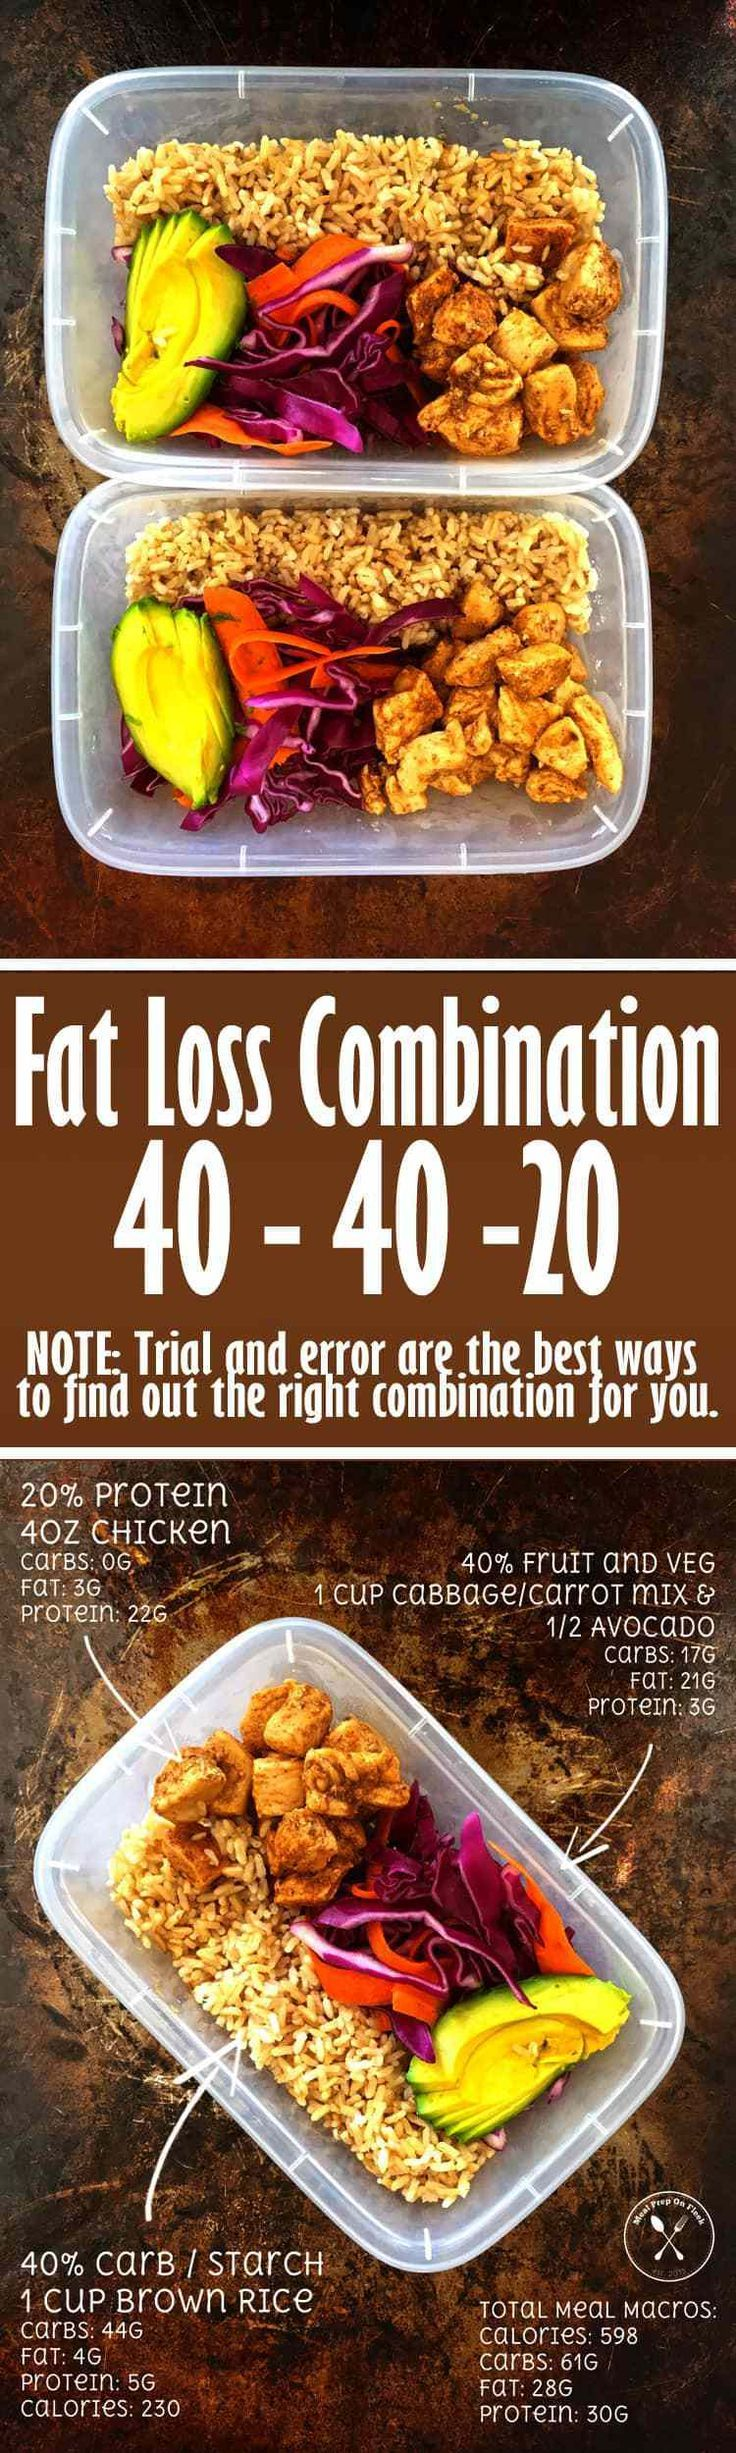 low calorie diet plan weight loss